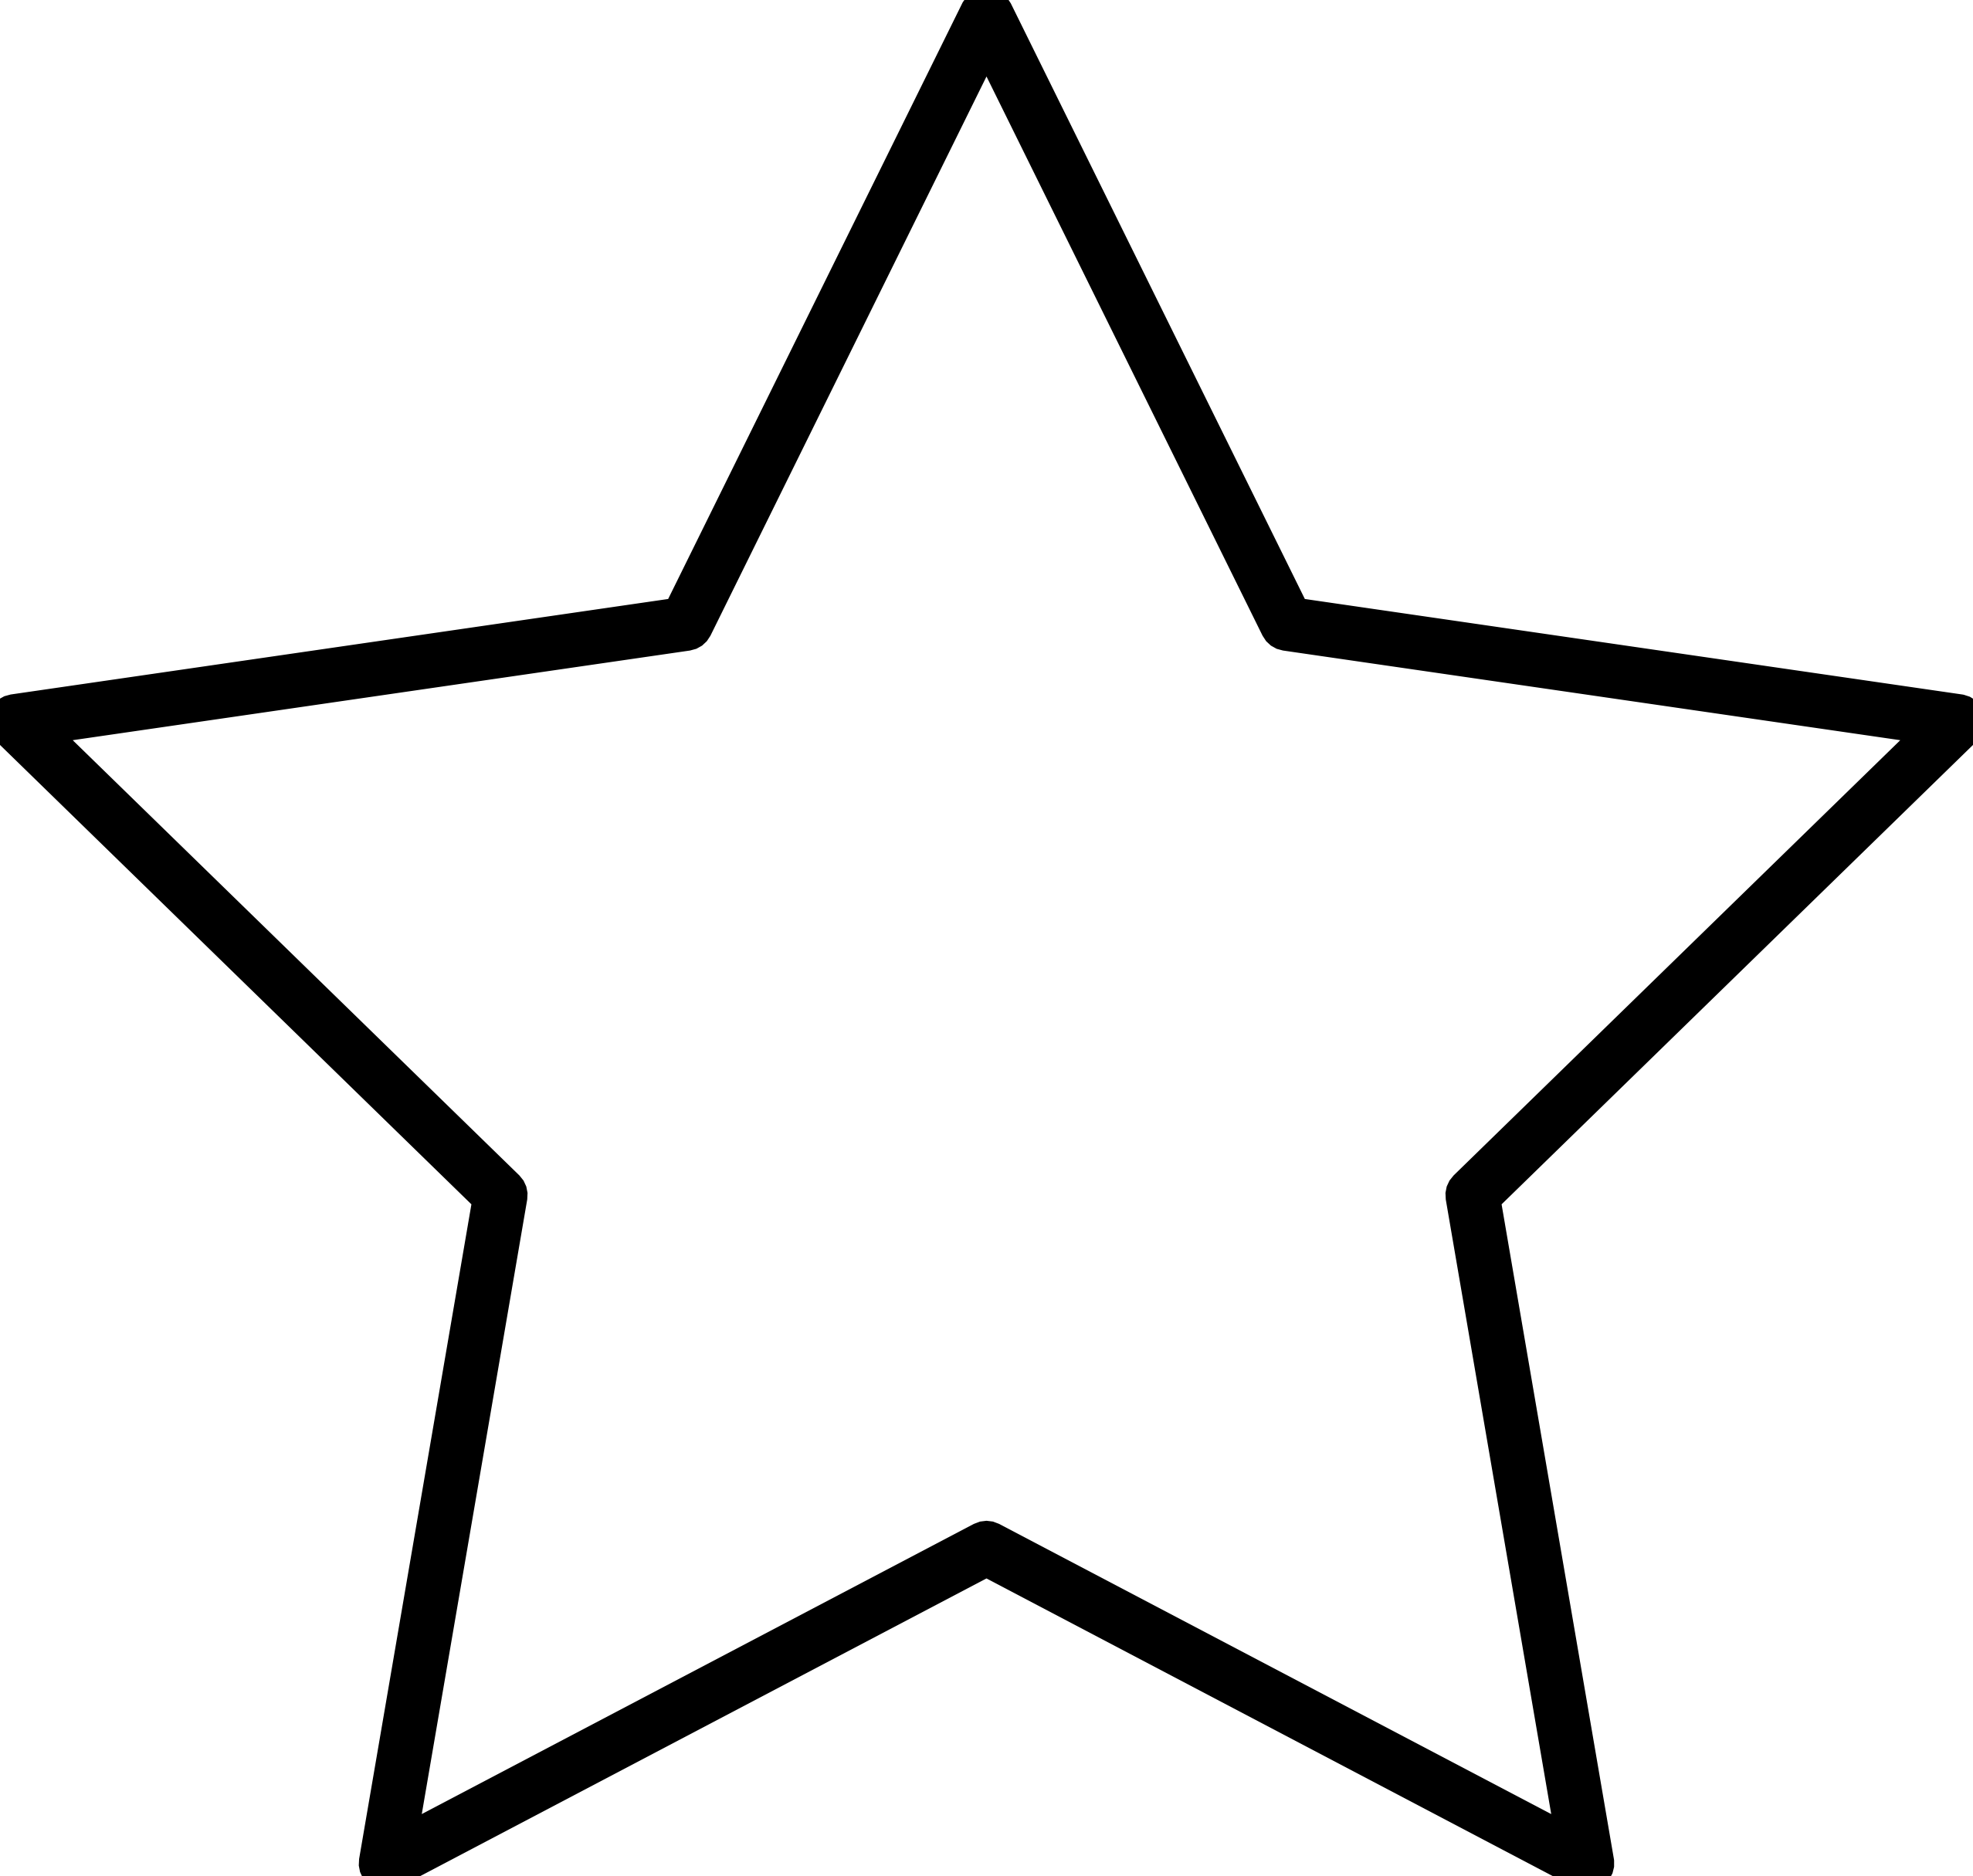 Free clipart star of david picture Star Of David Silhouette at GetDrawings.com | Free for personal use ... picture